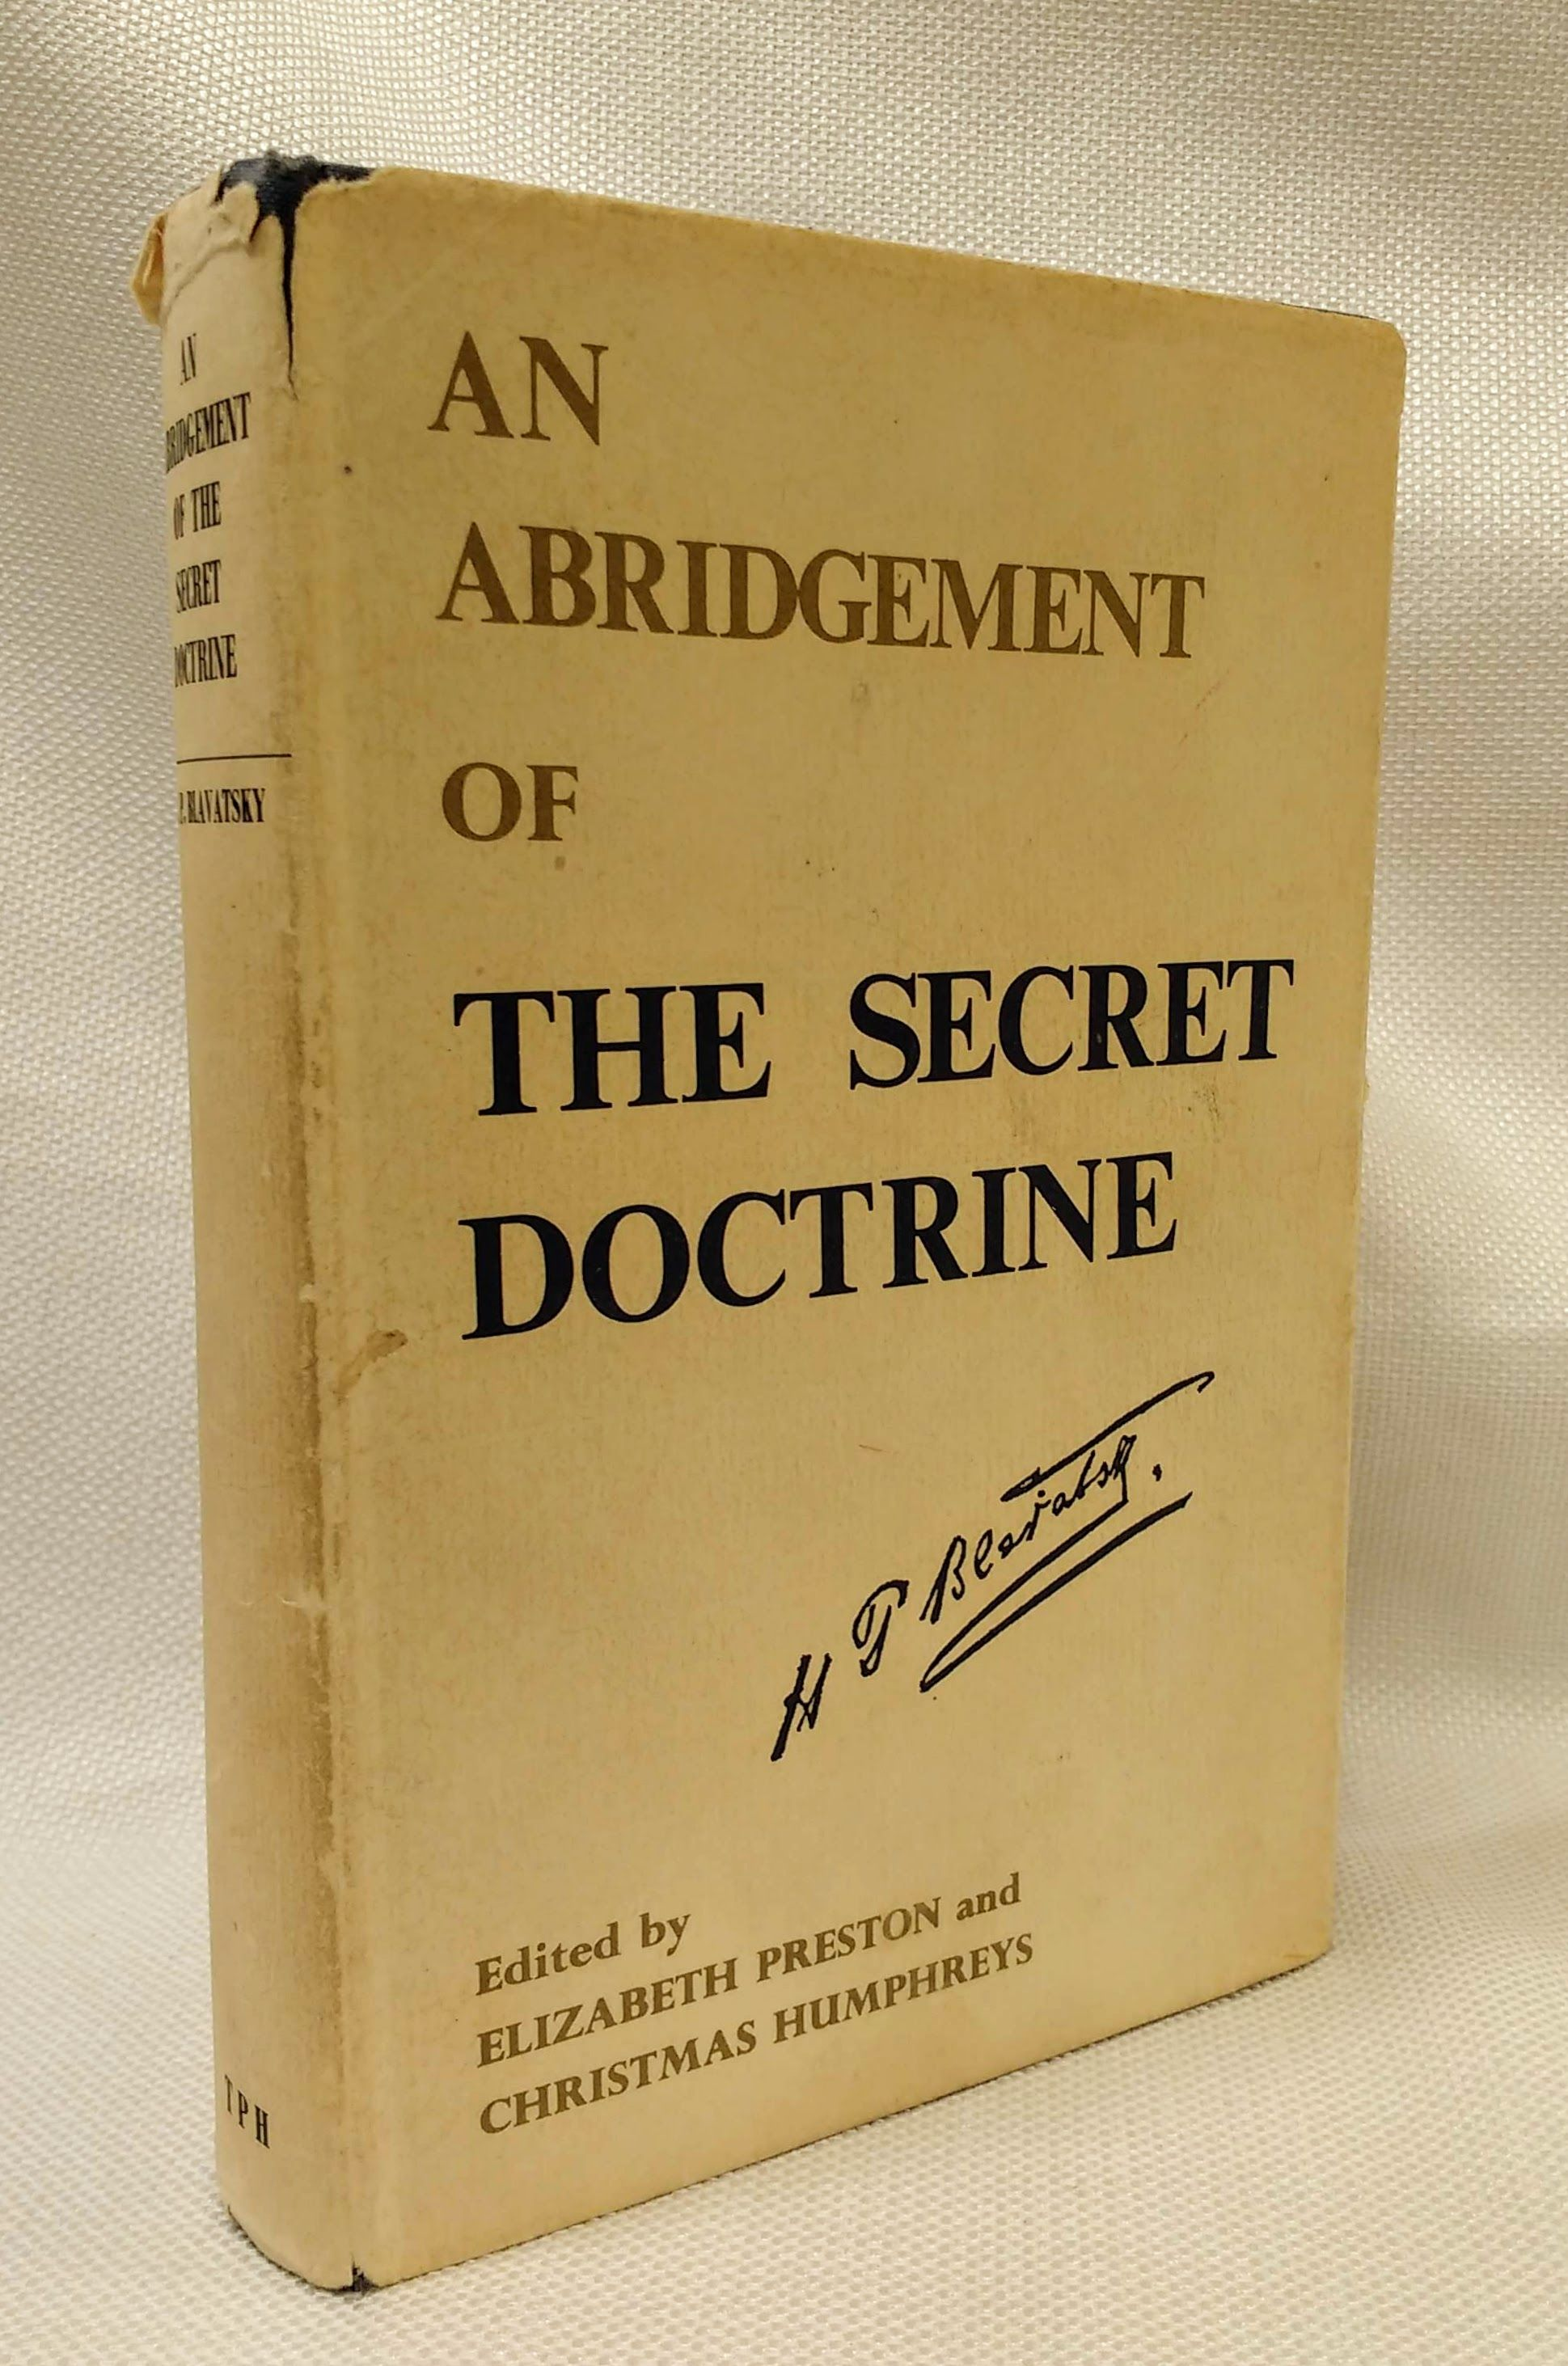 Abridgement of the Secret Doctrine, Blavatsky, Helen P.